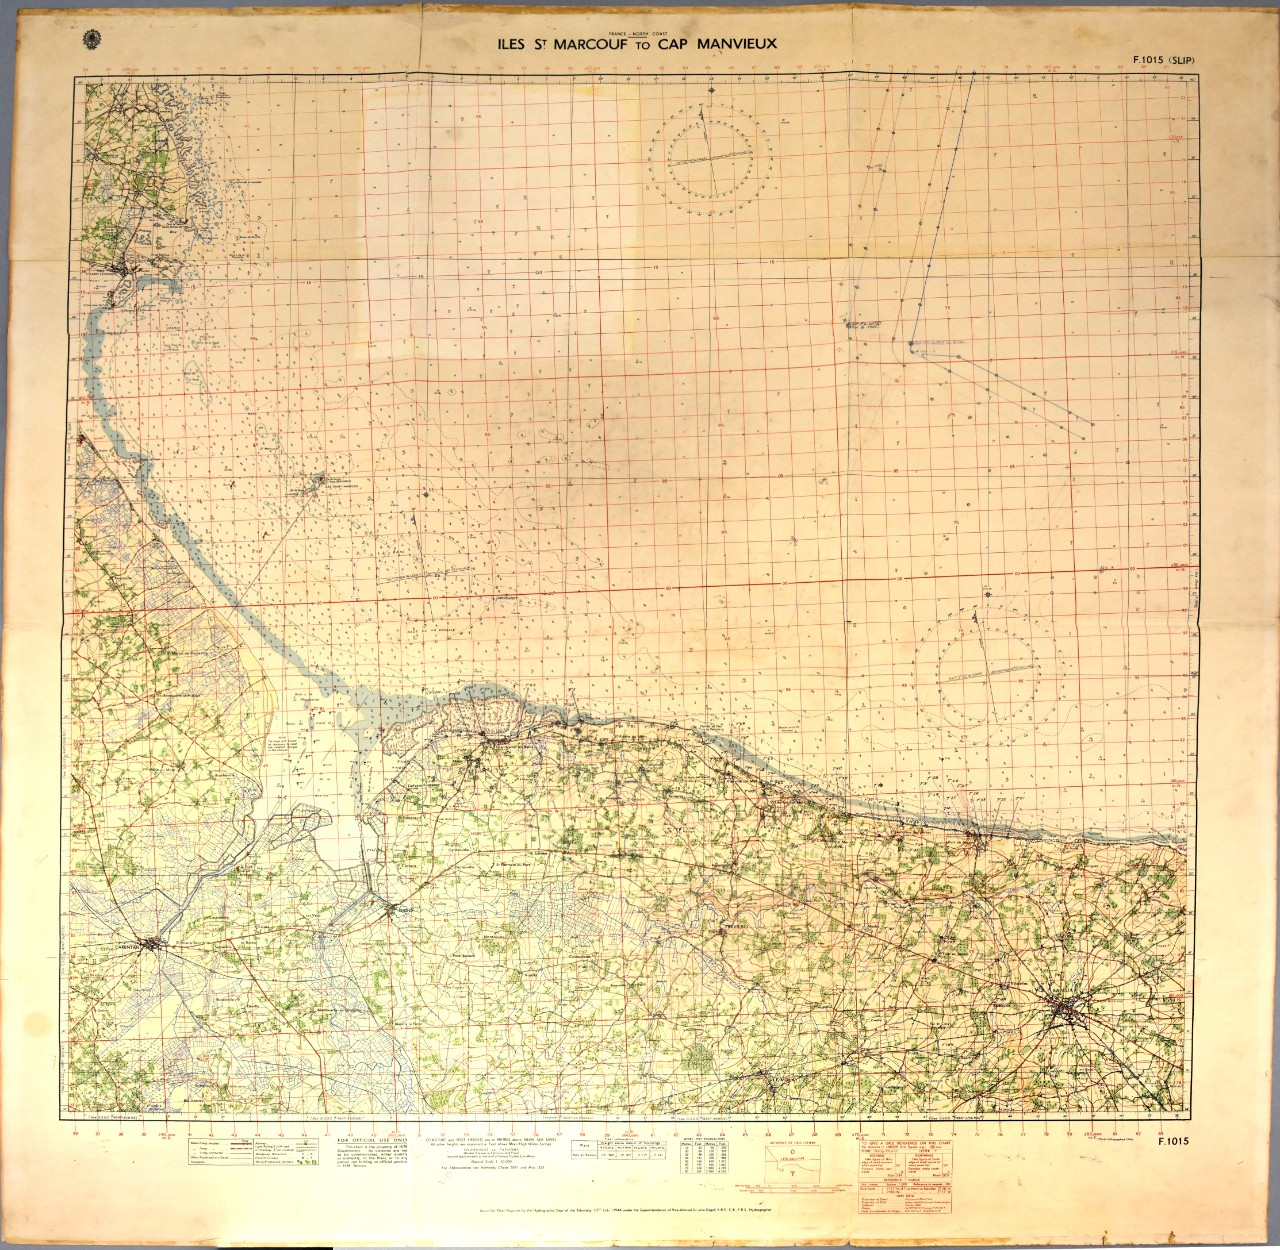 Chart of the coast of France showing Iles St. Marcouf to Cap Manvieux